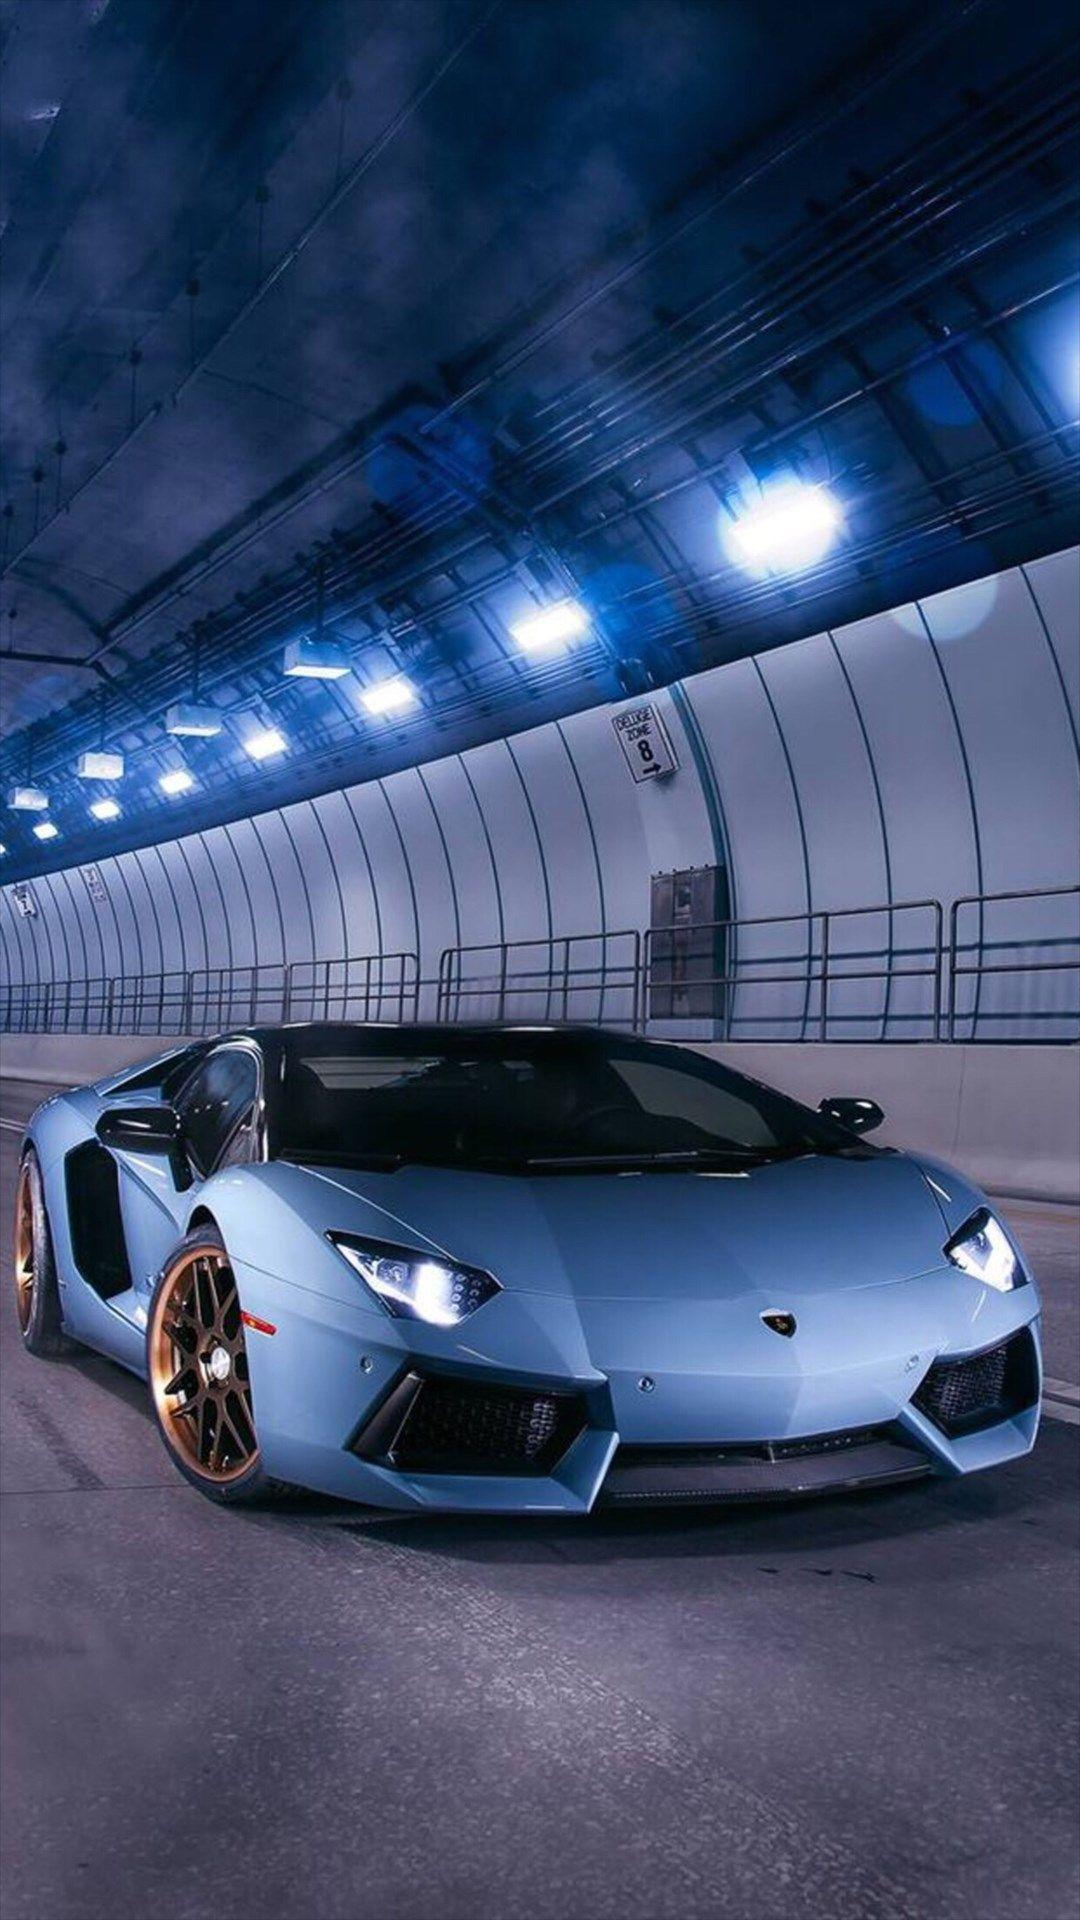 1080x1920 Cars Wallpapers - Wallpaper Cave